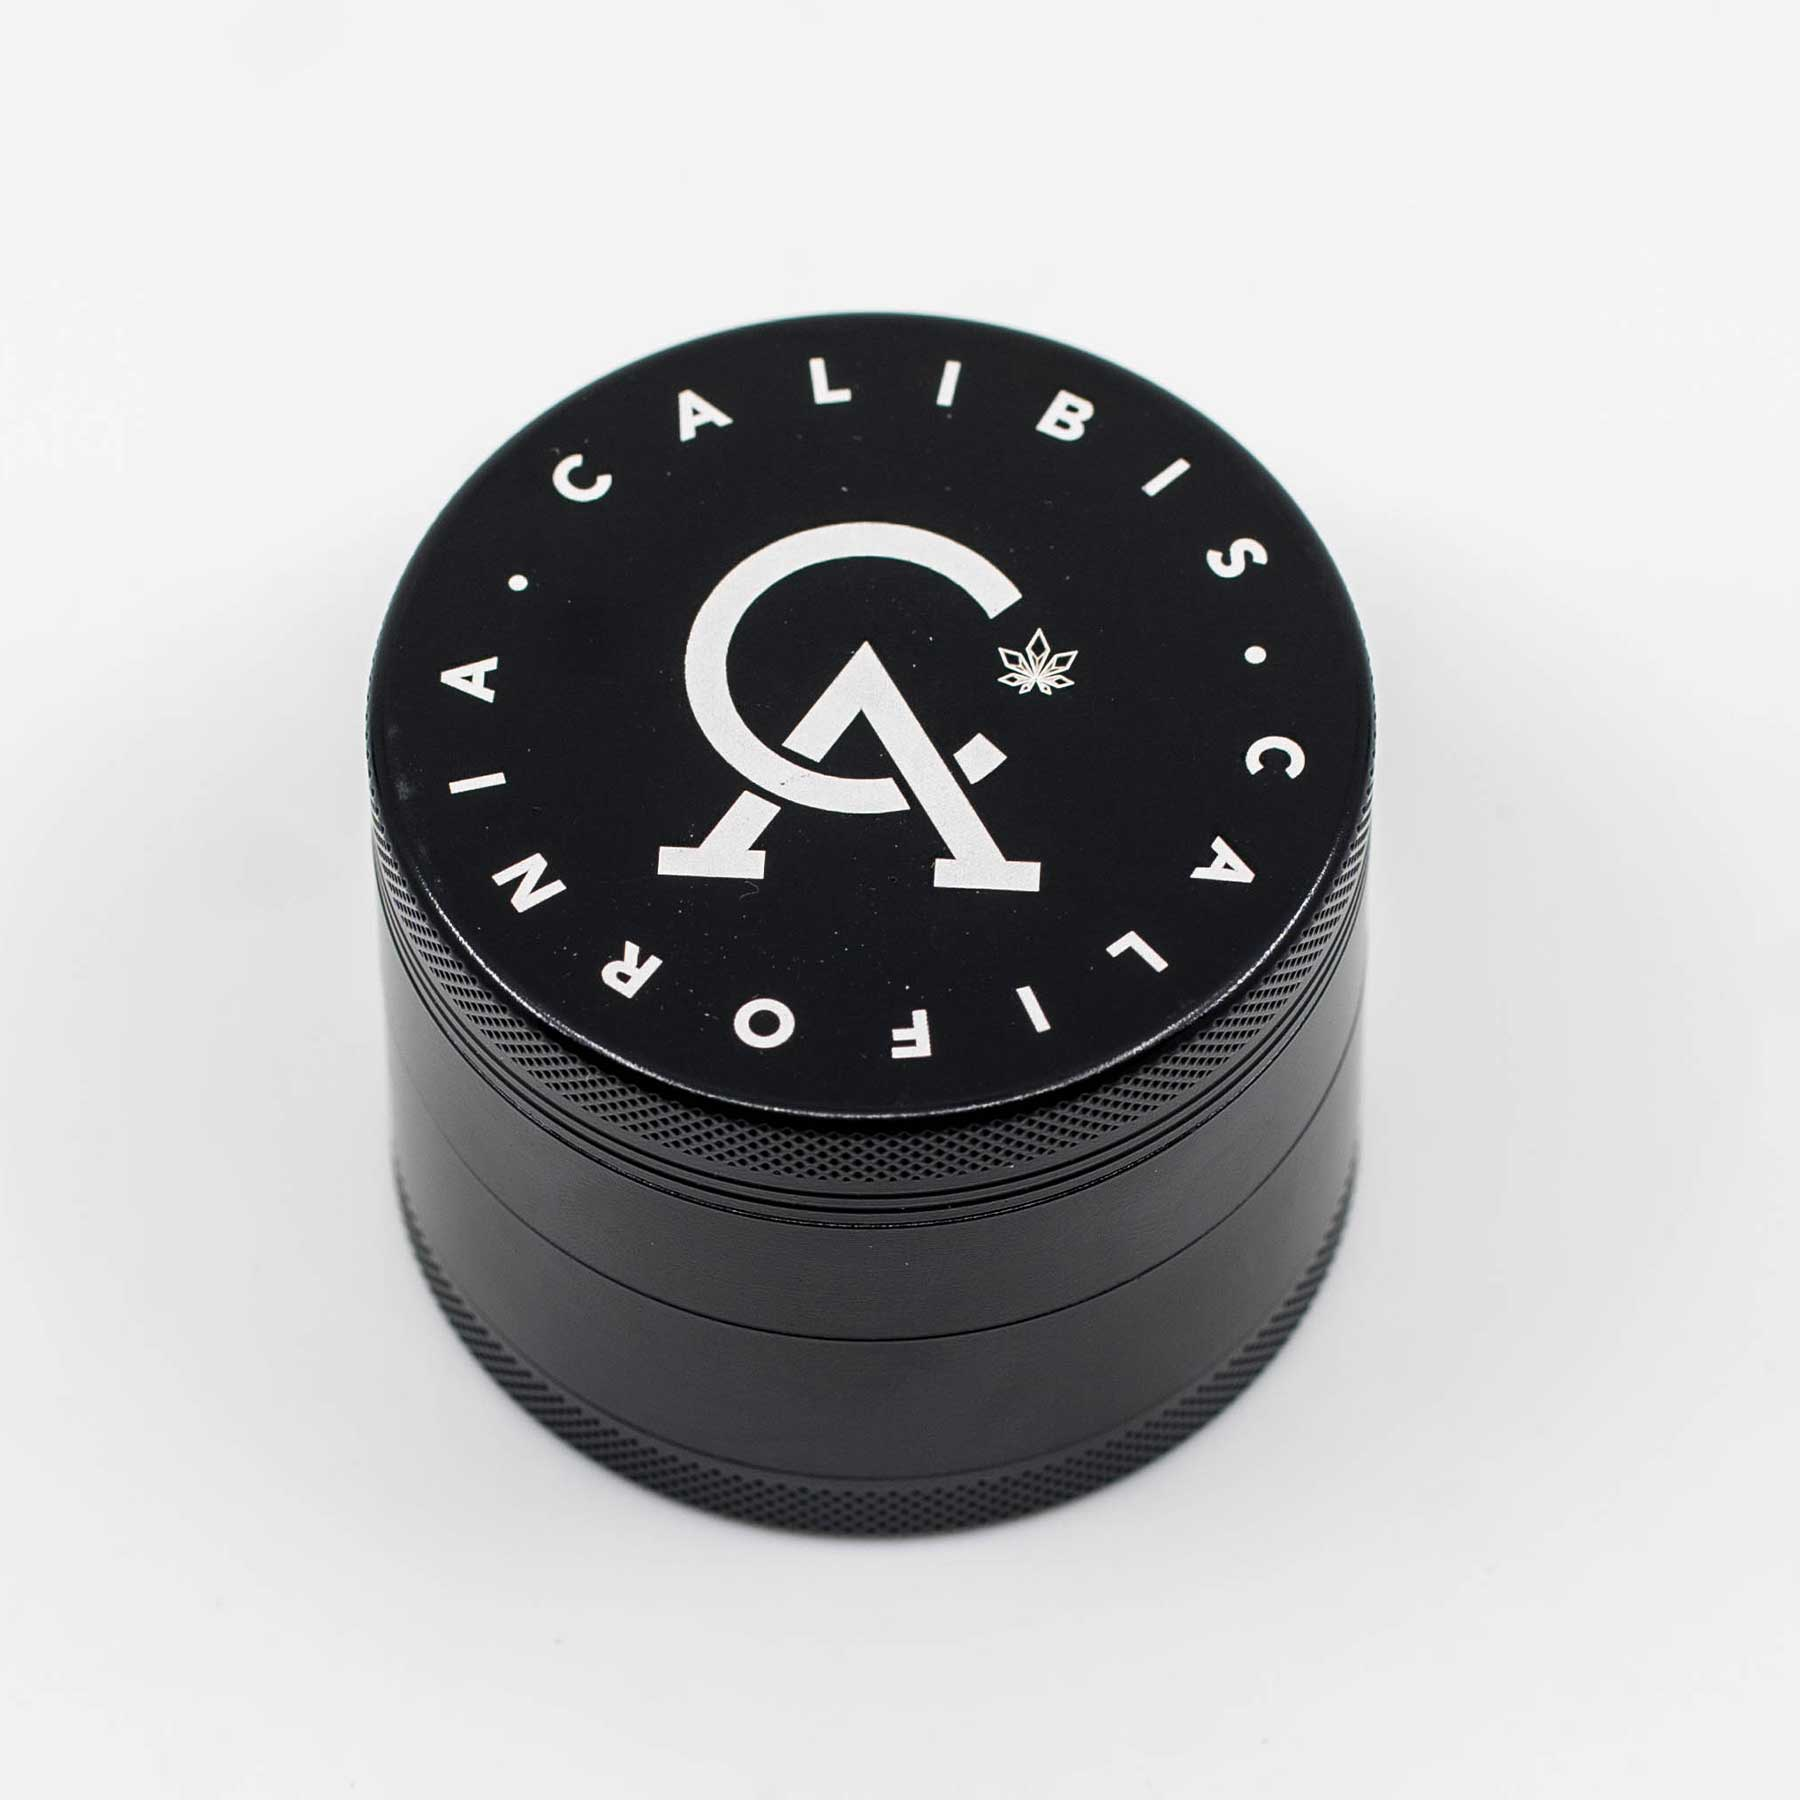 The Cali Ceramic Grinder by Calibis Clothing